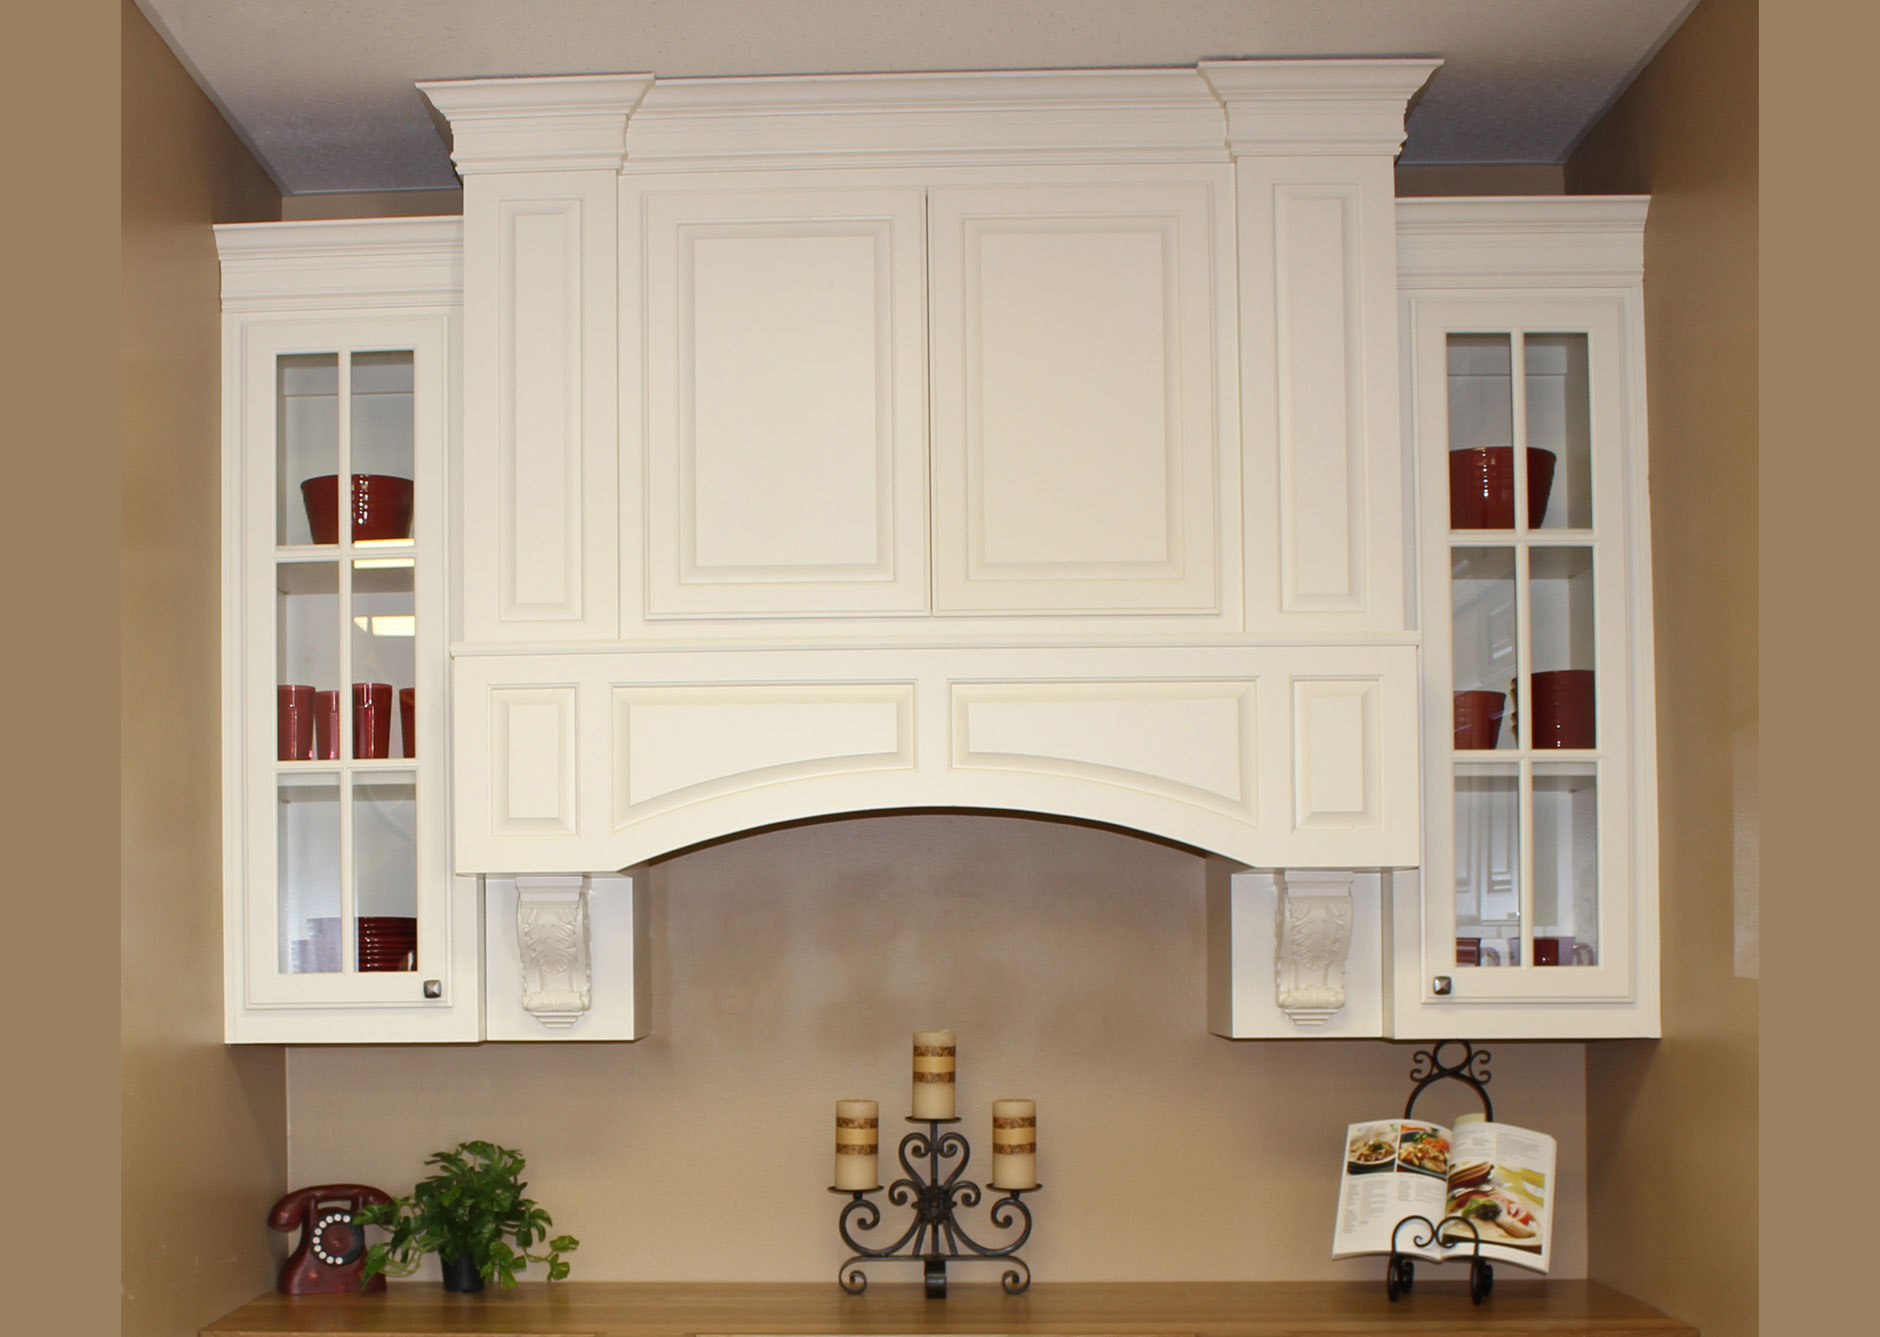 kitchen cabinets knotty alder tables and chairs sets custom vent hoods - burrows central texas ...